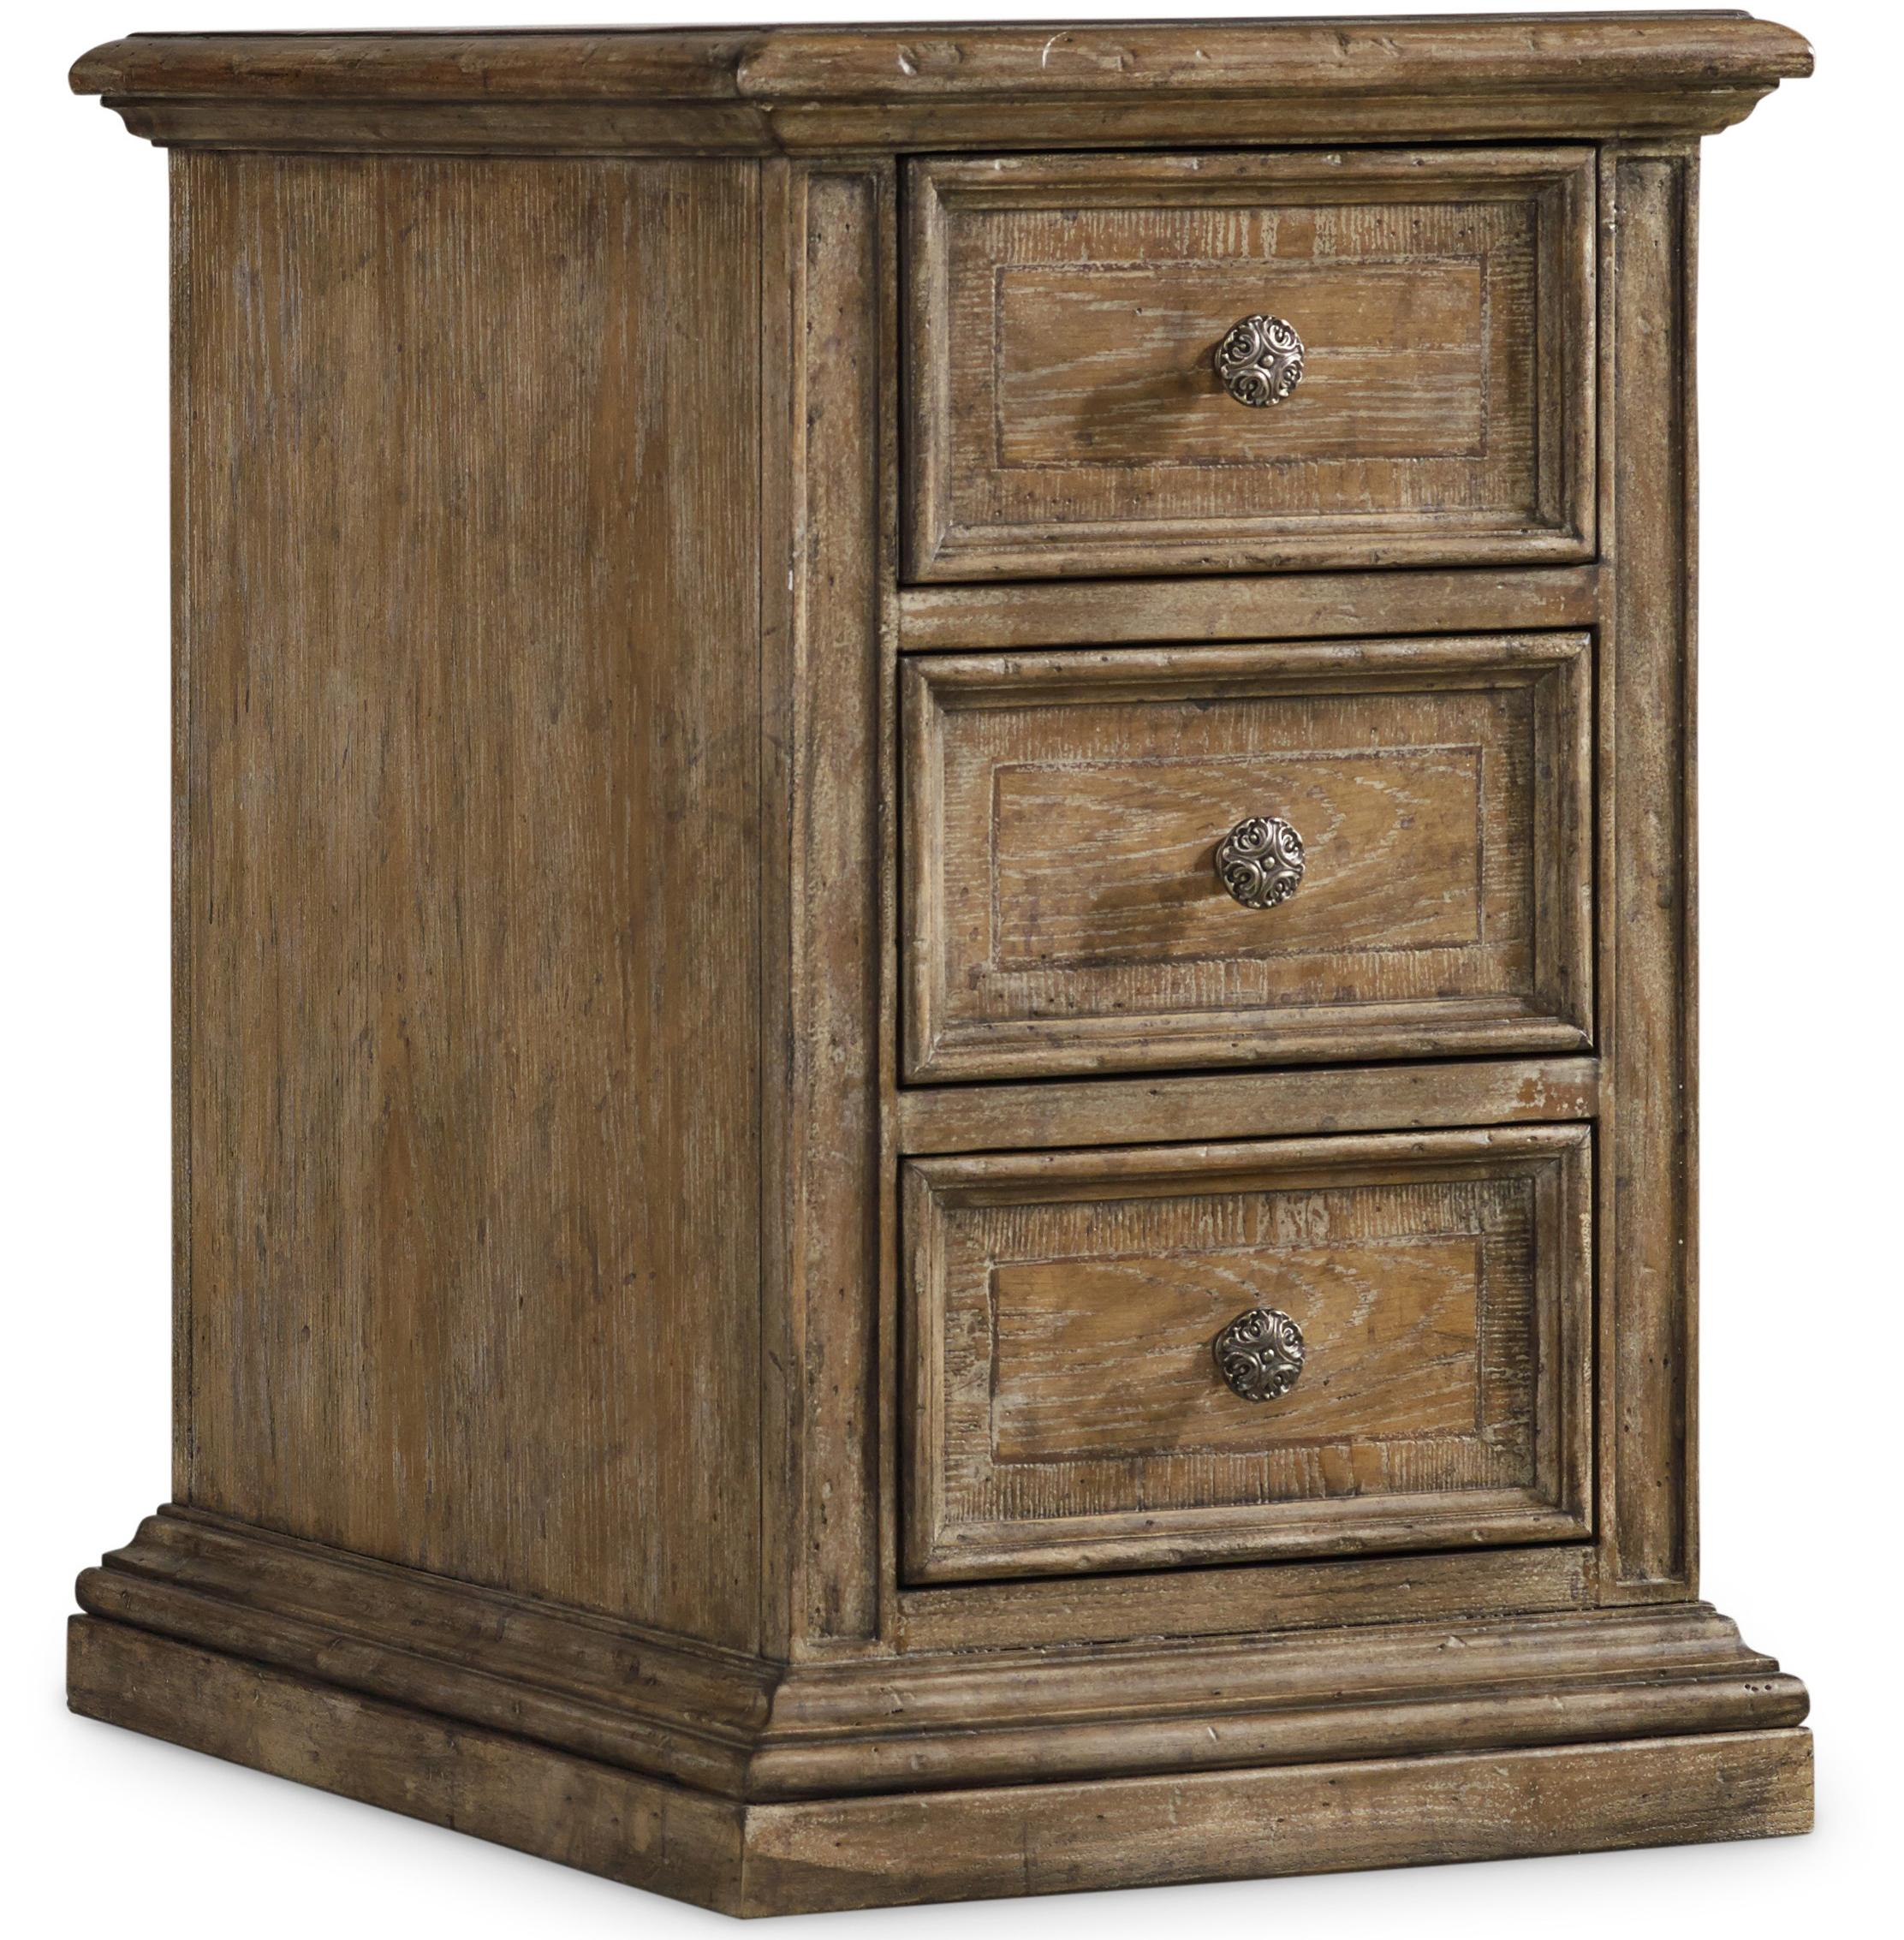 Hooker Furniture Solana Chairside Chest - Item Number: 5291-80114